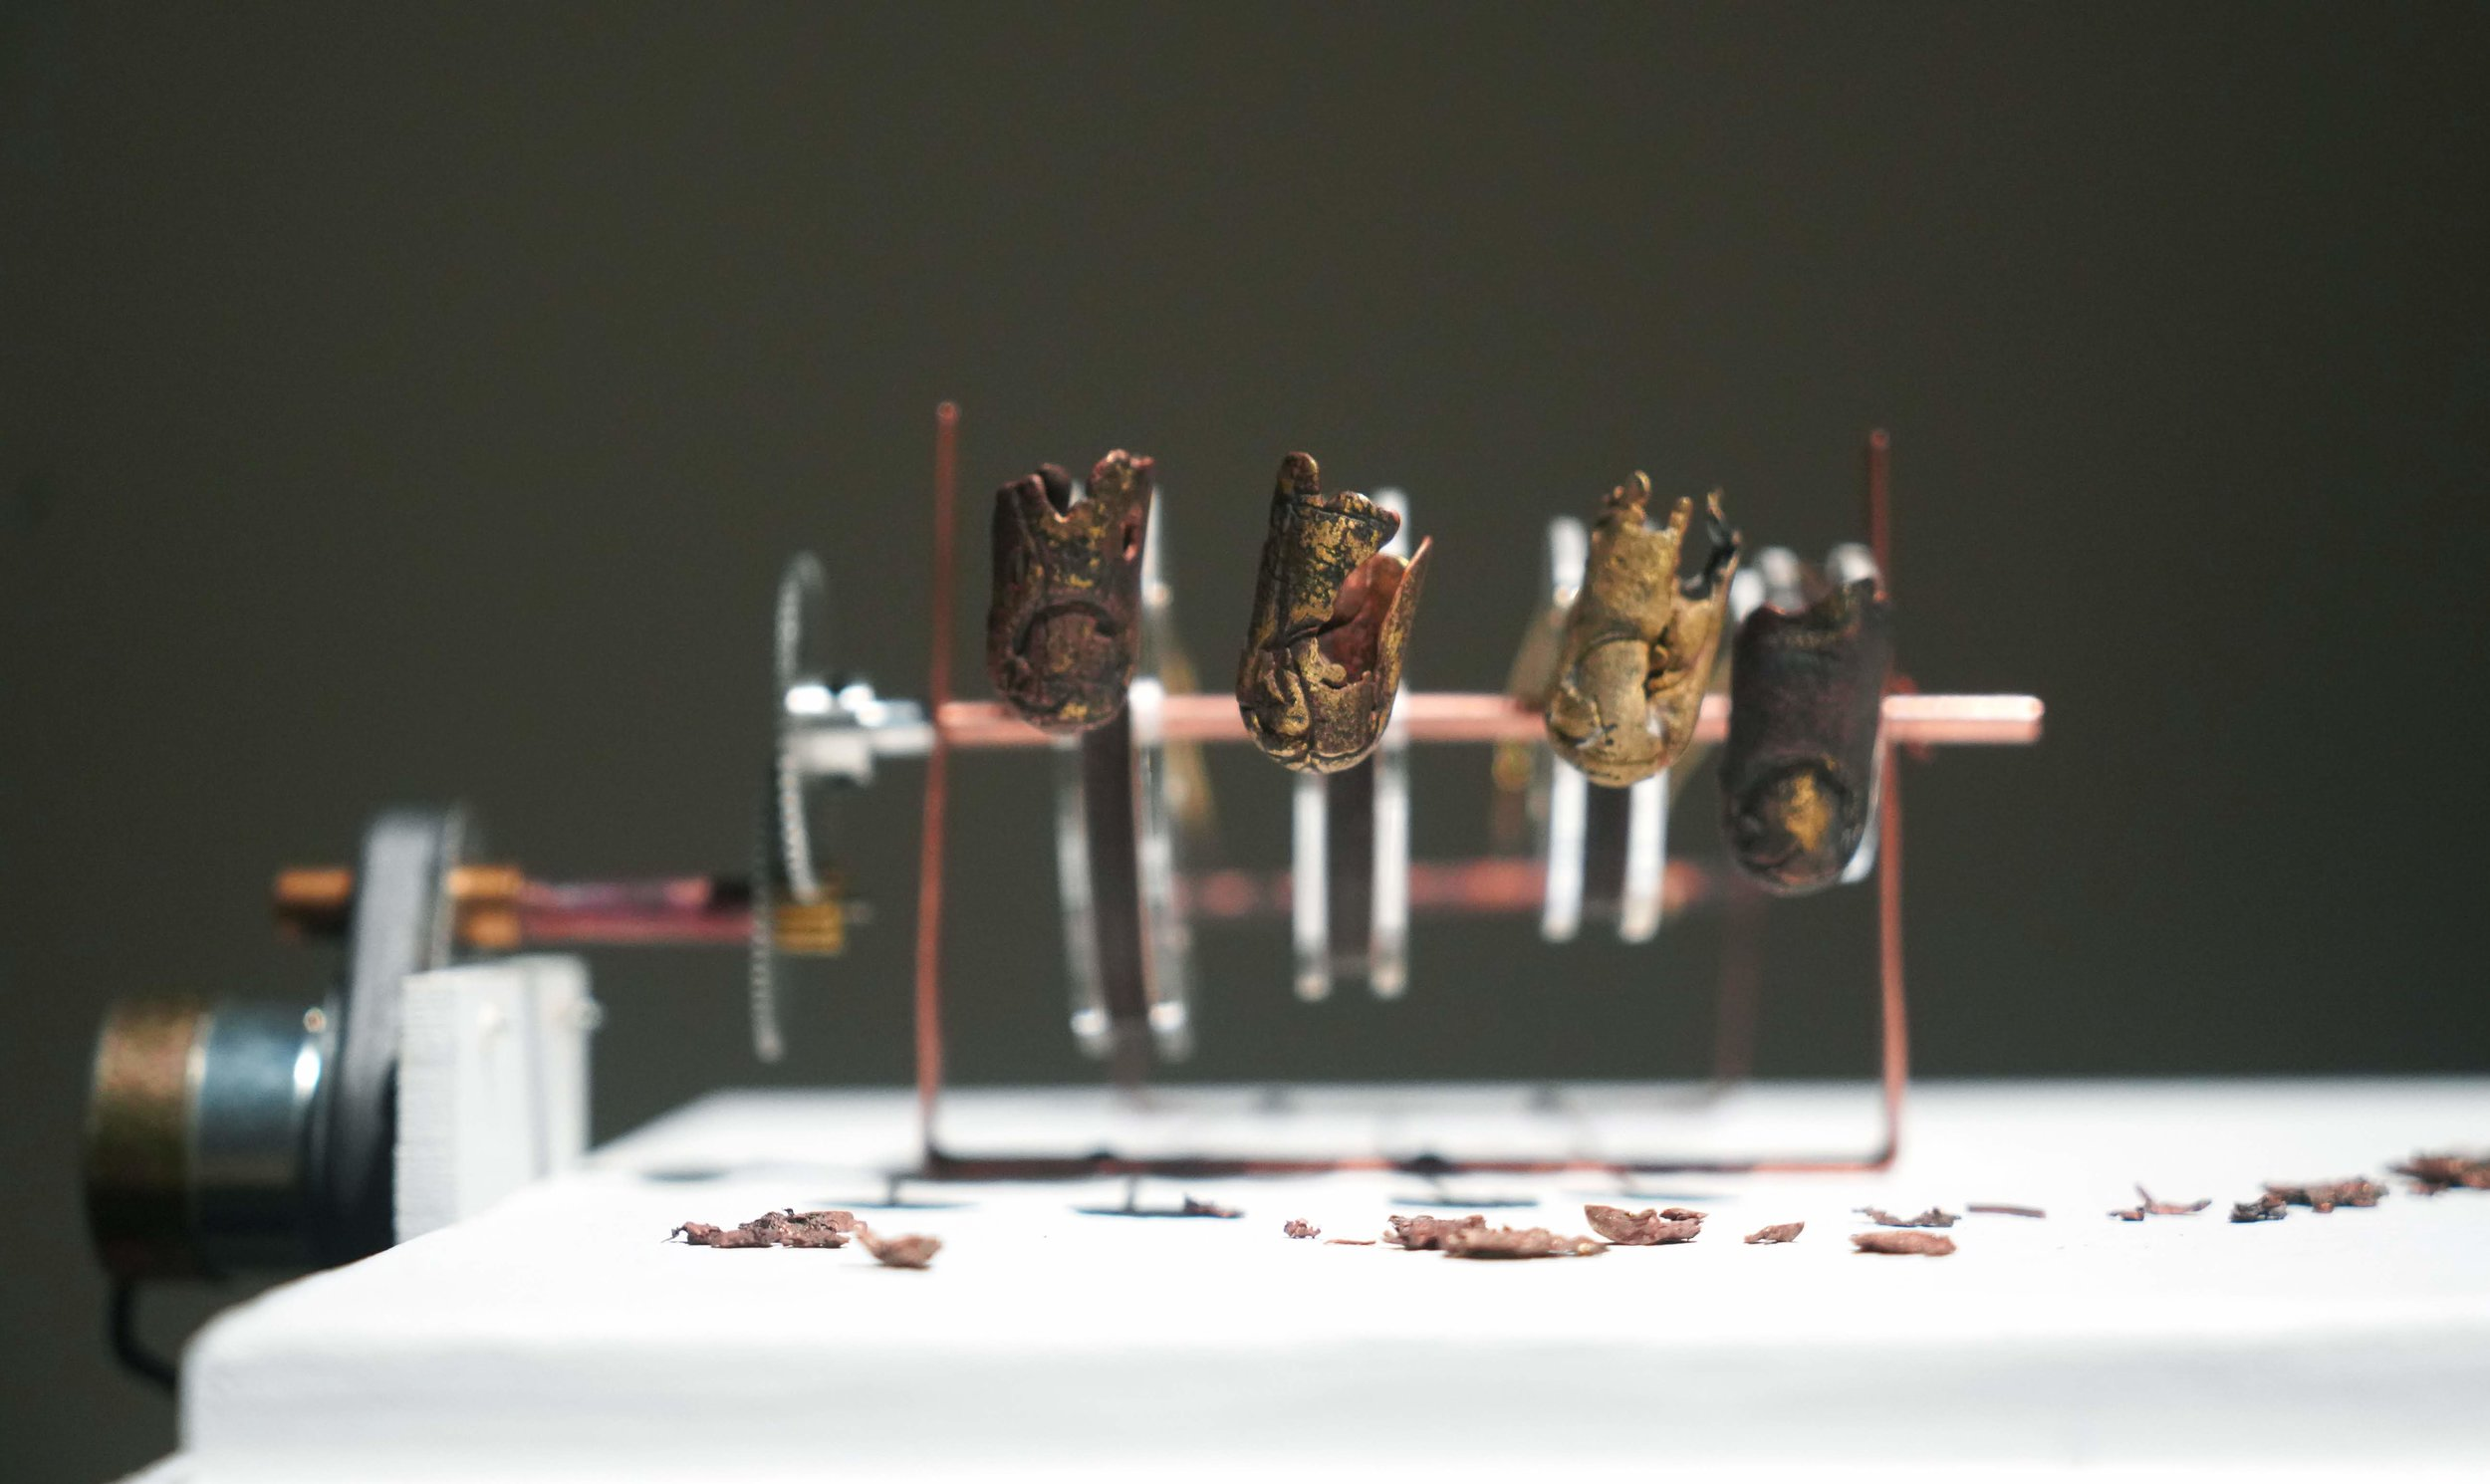 Brass casts of my finger tips. copper, wood, acrylic, clock gears, found miniature screws, found 5rpm motor.